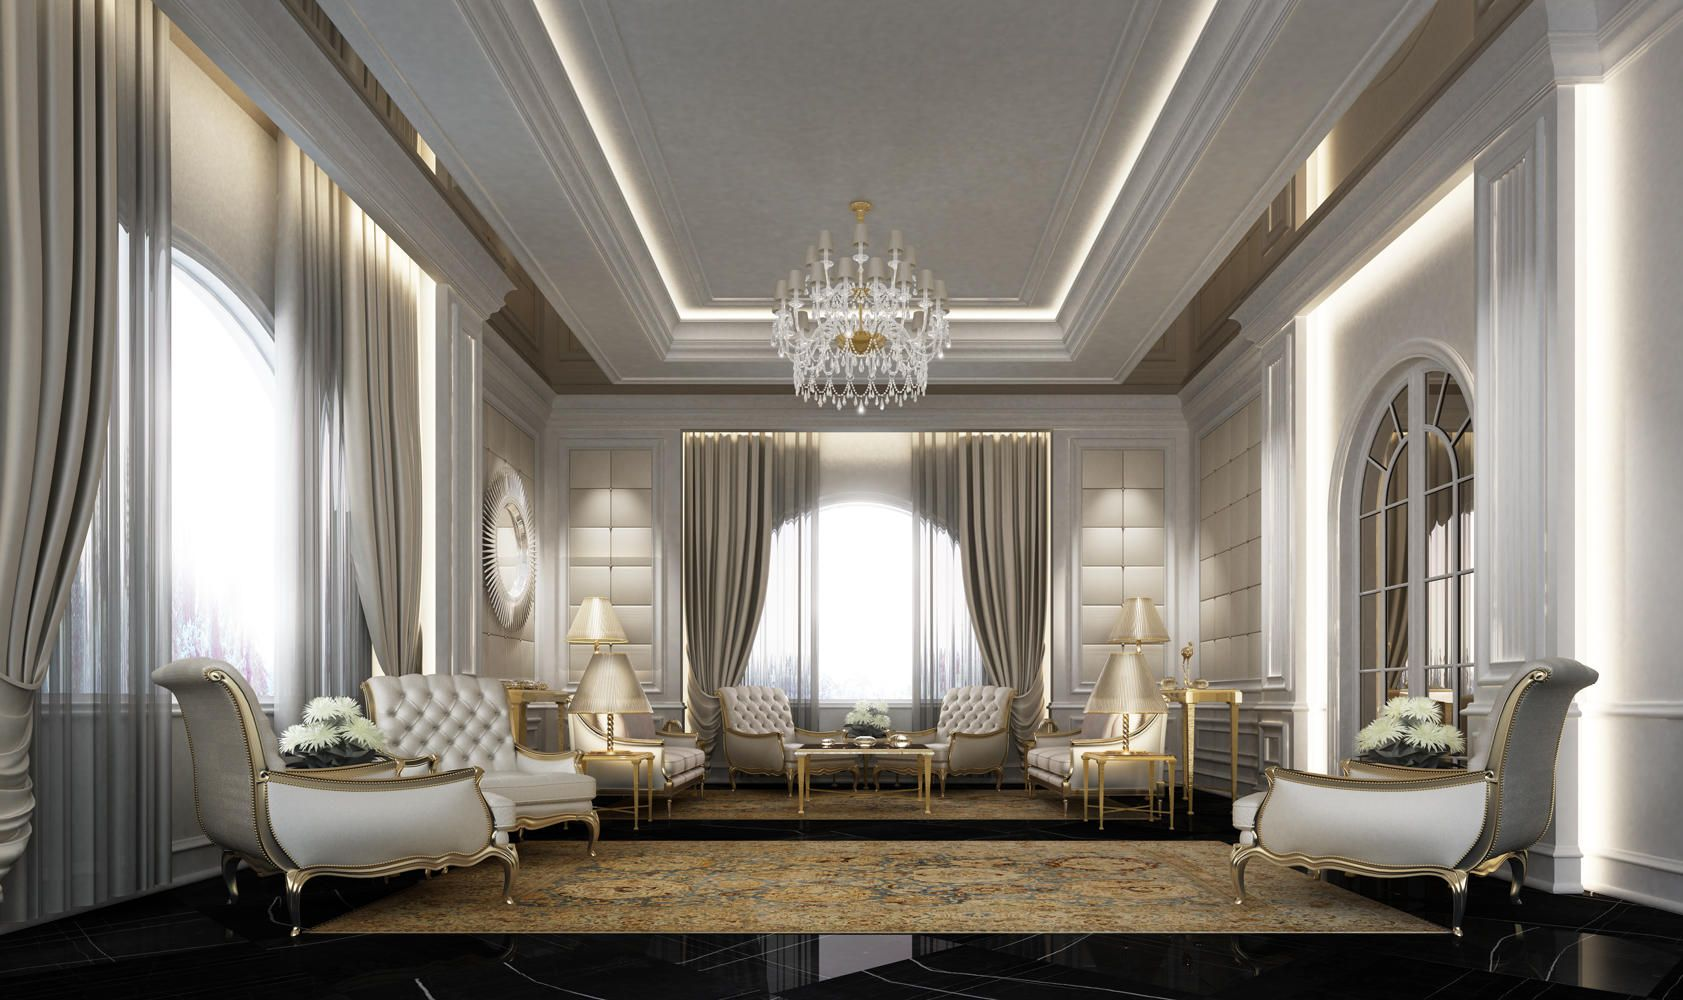 Arabic majlis designs ions design interior design for The interior designer